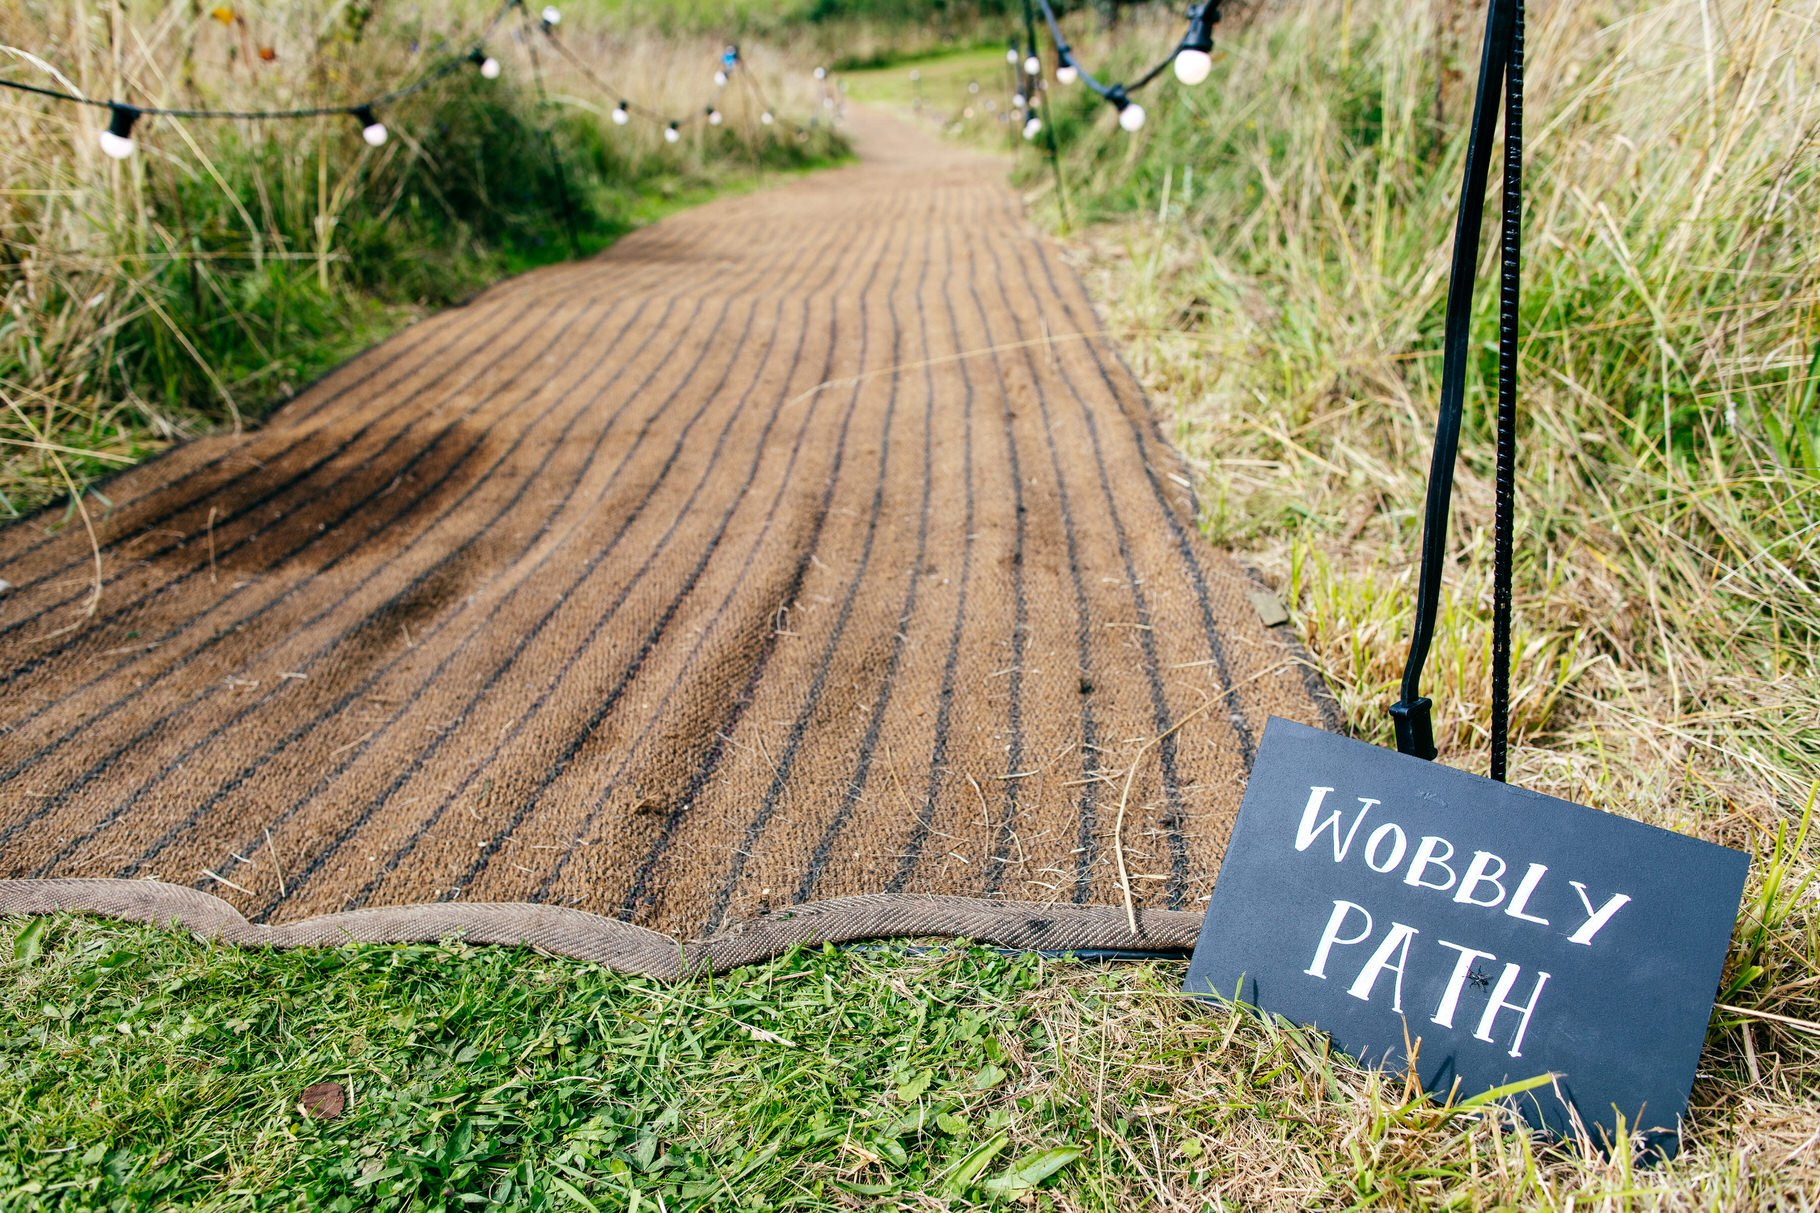 wobbly path with festoon lighting at back garden wedding